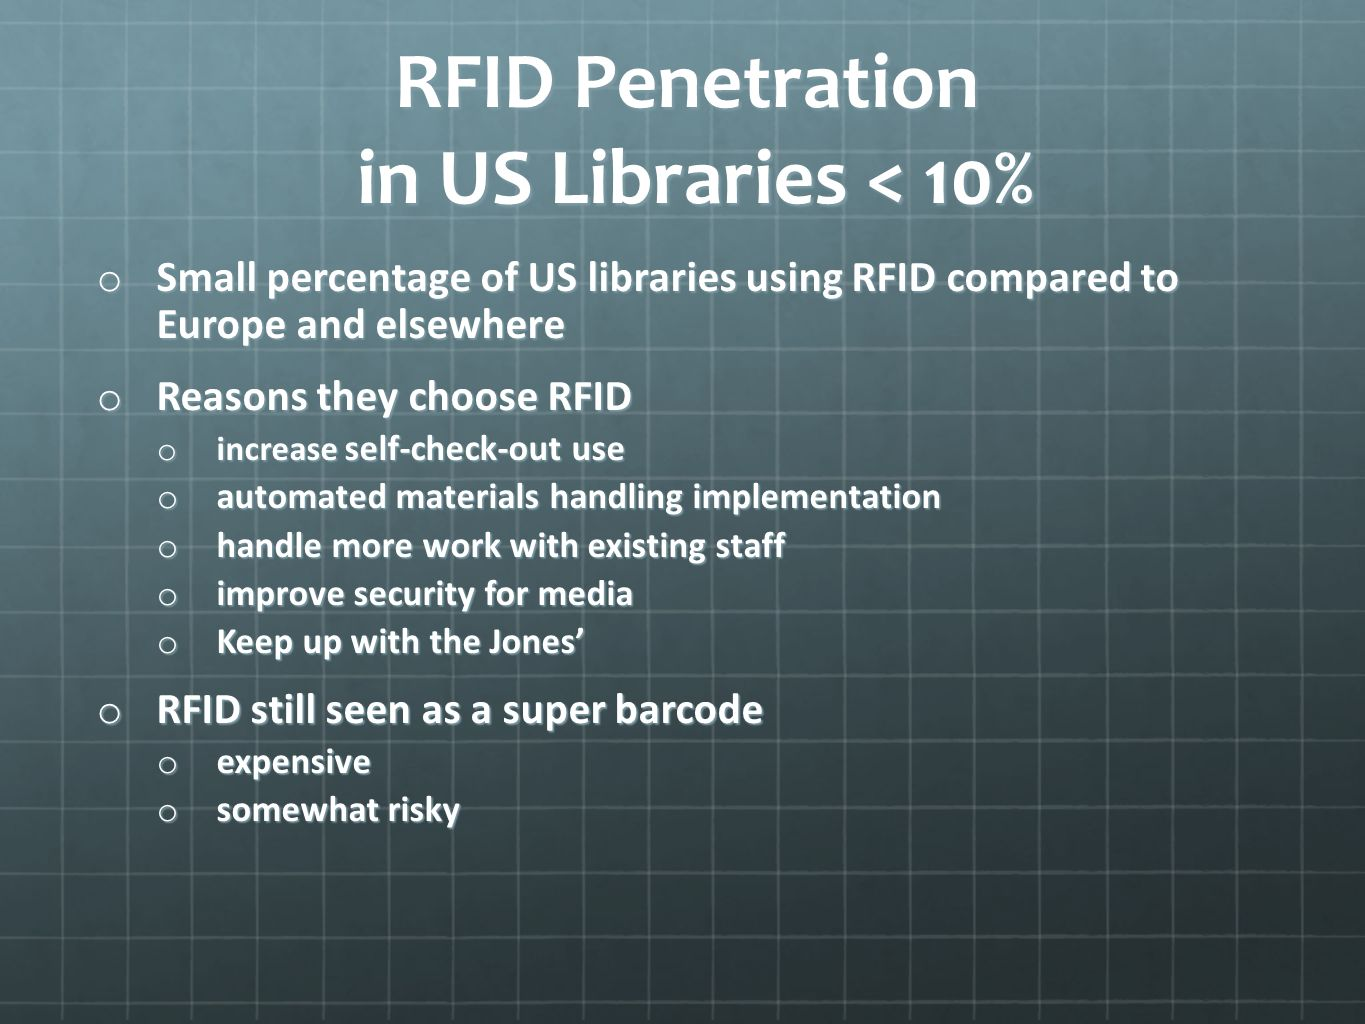 RFID Penetration in US Libraries < 10% o Small percentage of US libraries using RFID compared to Europe and elsewhere o Reasons they choose RFID o increase self-check-out use o automated materials handling implementation o handle more work with existing staff o improve security for media o Keep up with the Jones o RFID still seen as a super barcode o expensive o somewhat risky